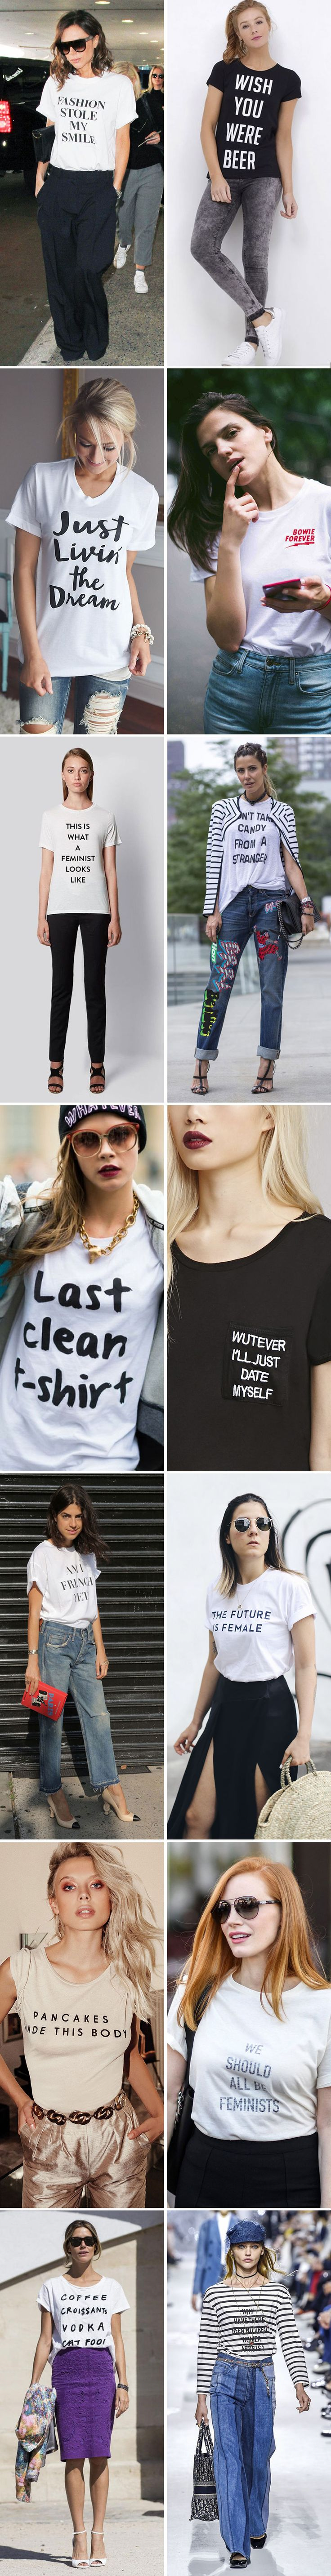 Hot now: T-shirts com frases de efeito